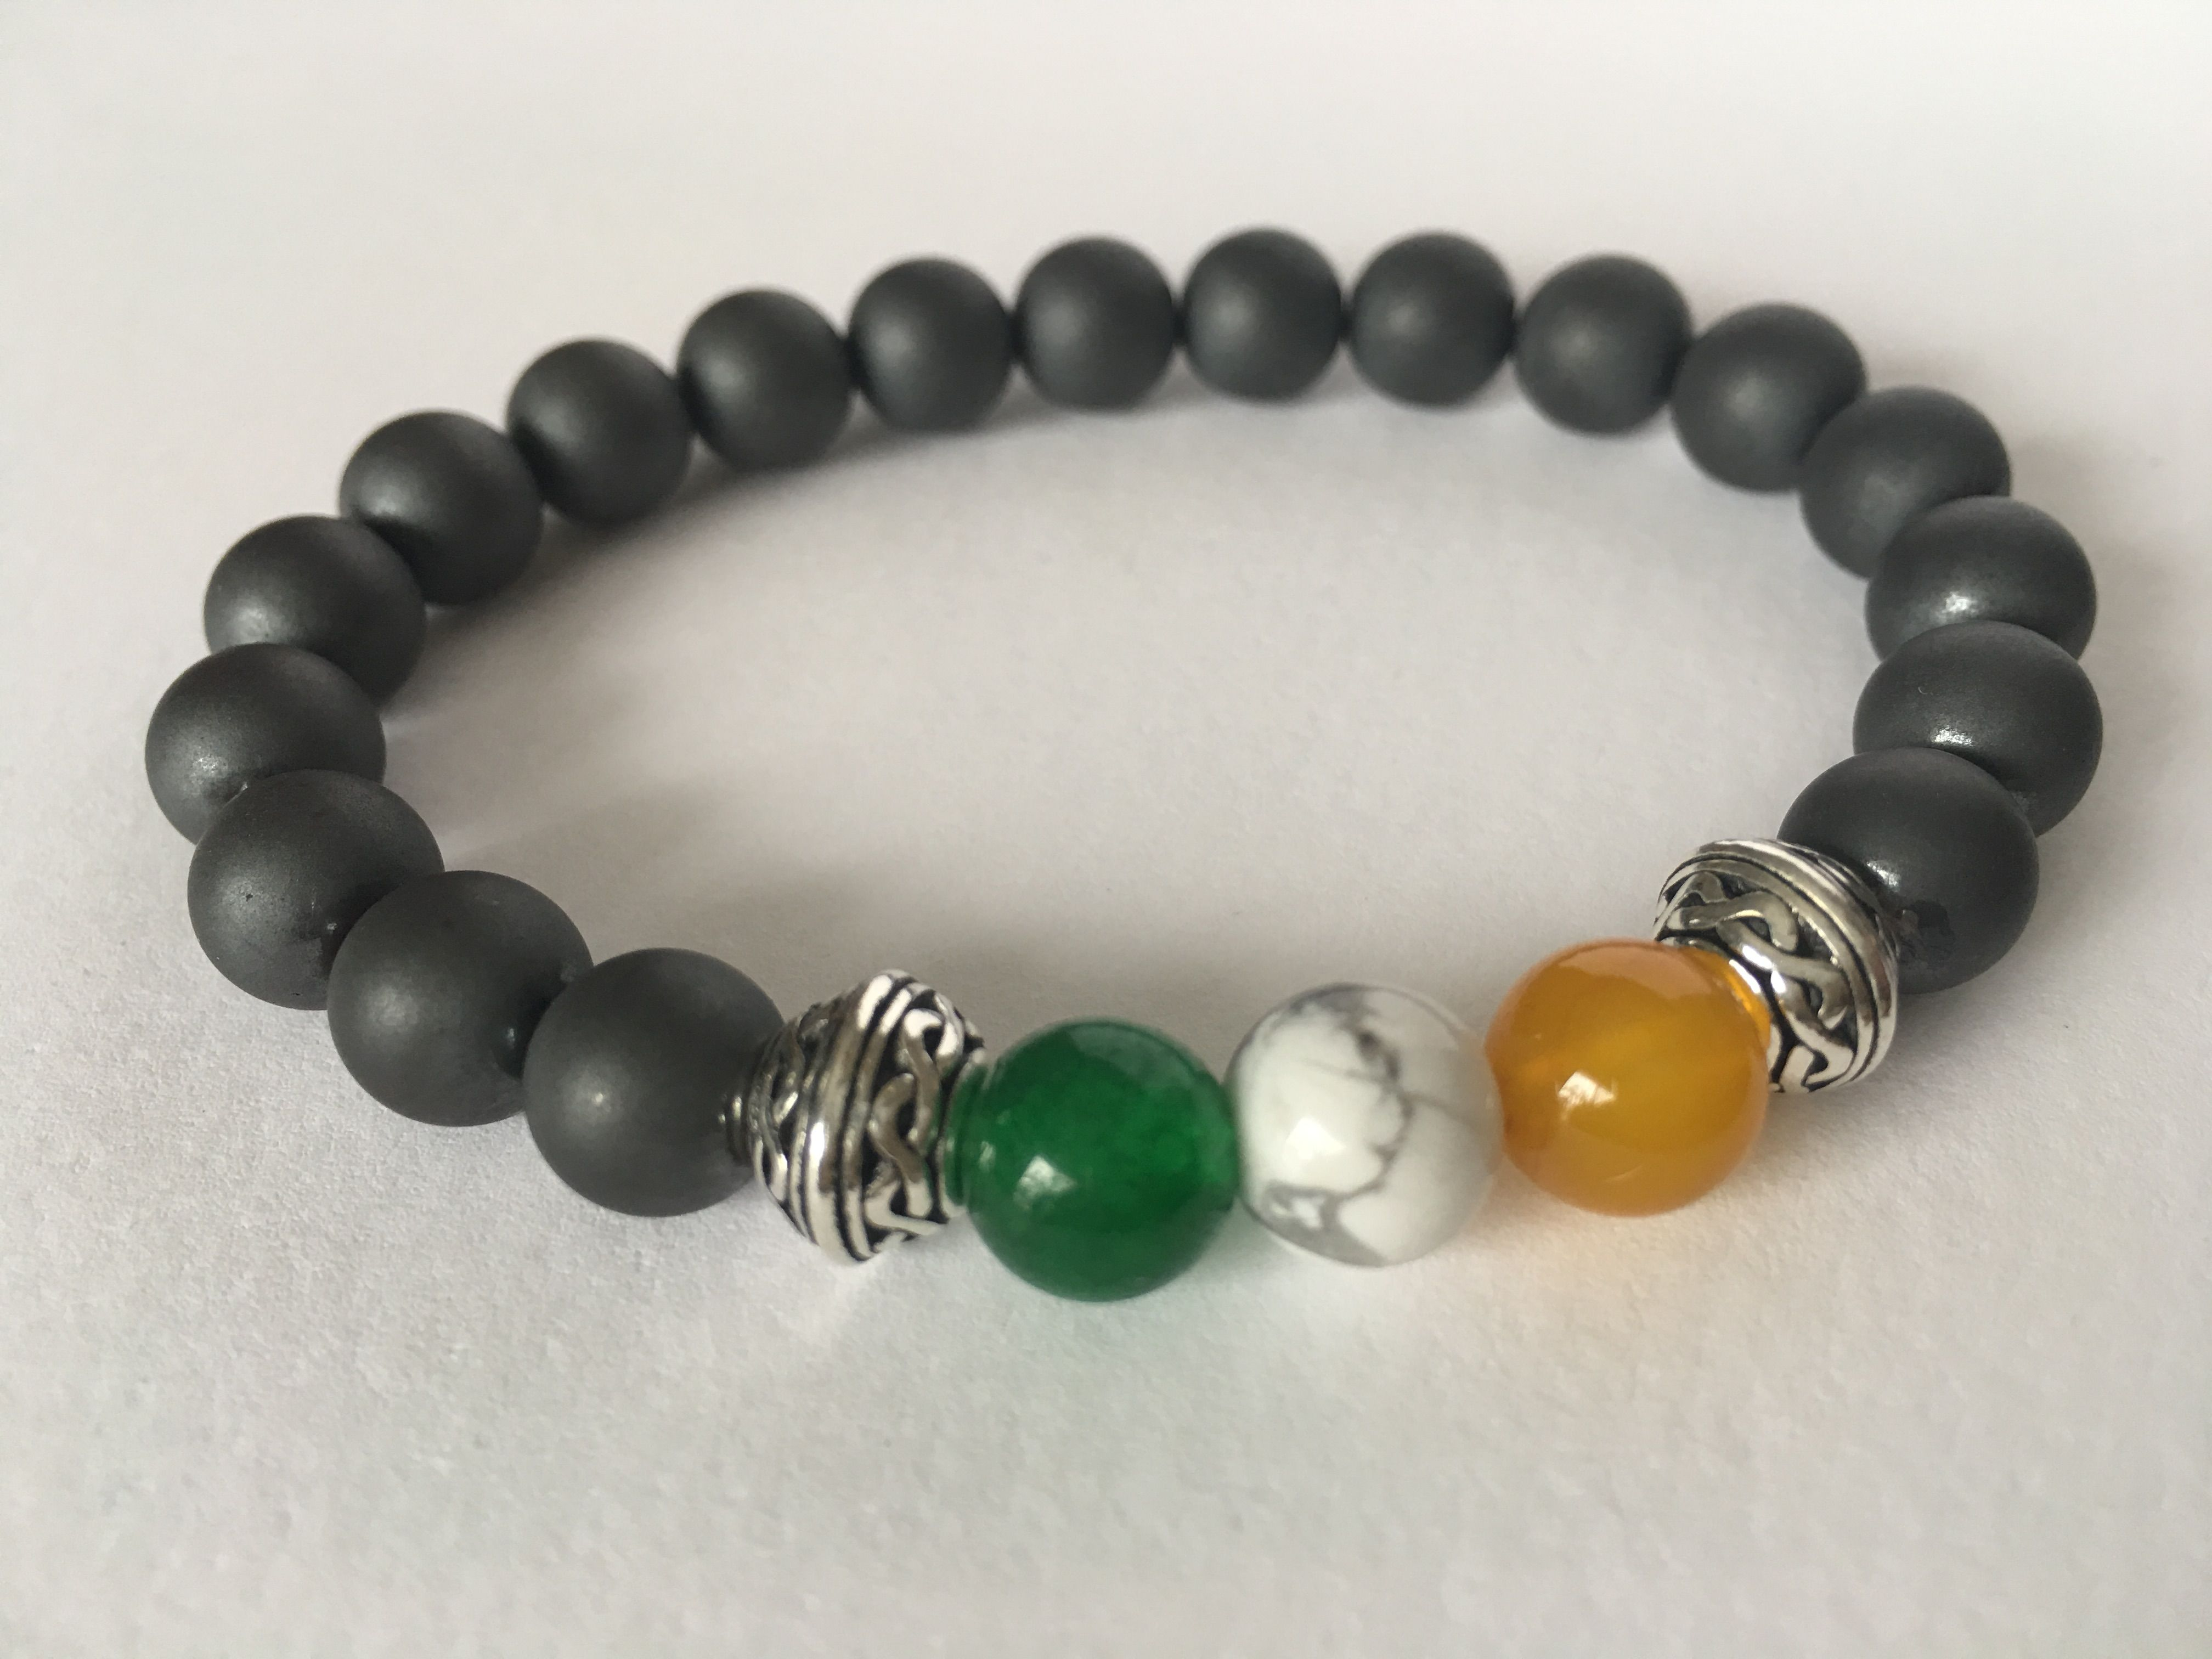 Wear your Irish pride! Irish flag gemstone bracelet.  https://www.etsy.com/listing/270148987/sale-10-off-mens-irish-flag-bracelet #etsymntt #stpatricksday #mensfashion